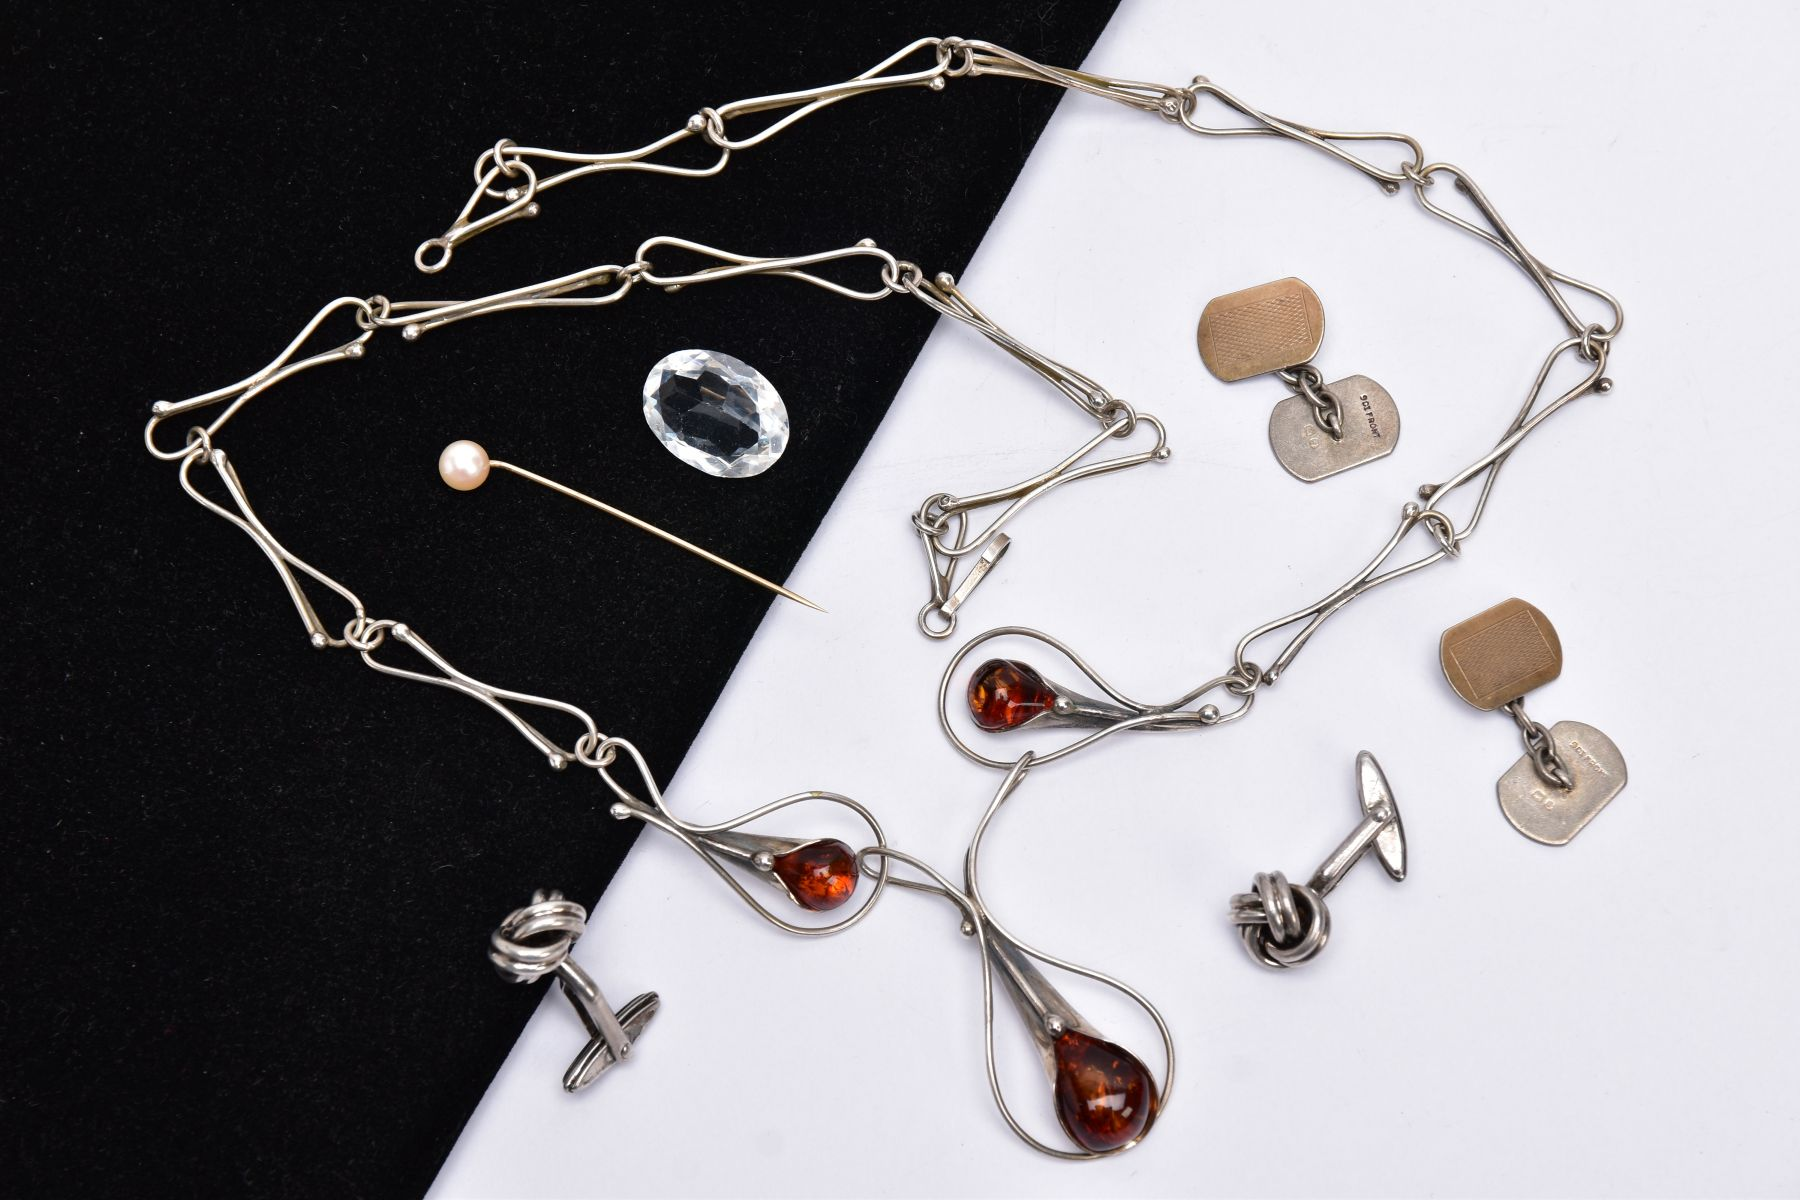 A SILVER AMBER NECKLACE, SILVER CUFFLINKS, STICK PIN, CUFFLINKS, ETC, the silver necklet designed